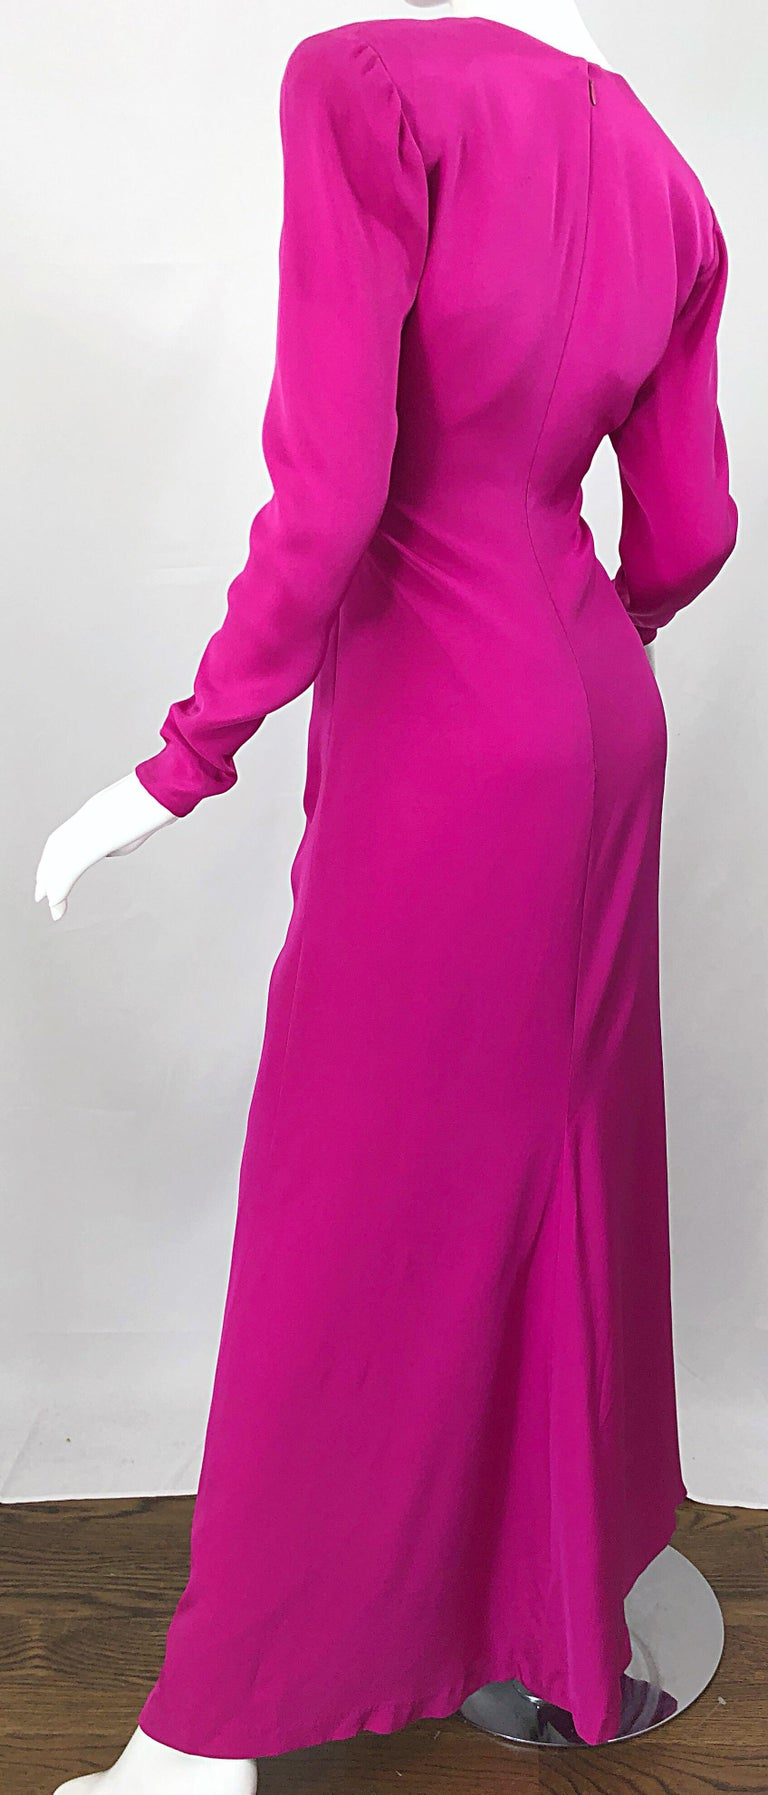 Vintage Bill Blass Size 10 Hot Pink Silk Jersey Cut - Out 1980s 80s Evening Gown For Sale 3